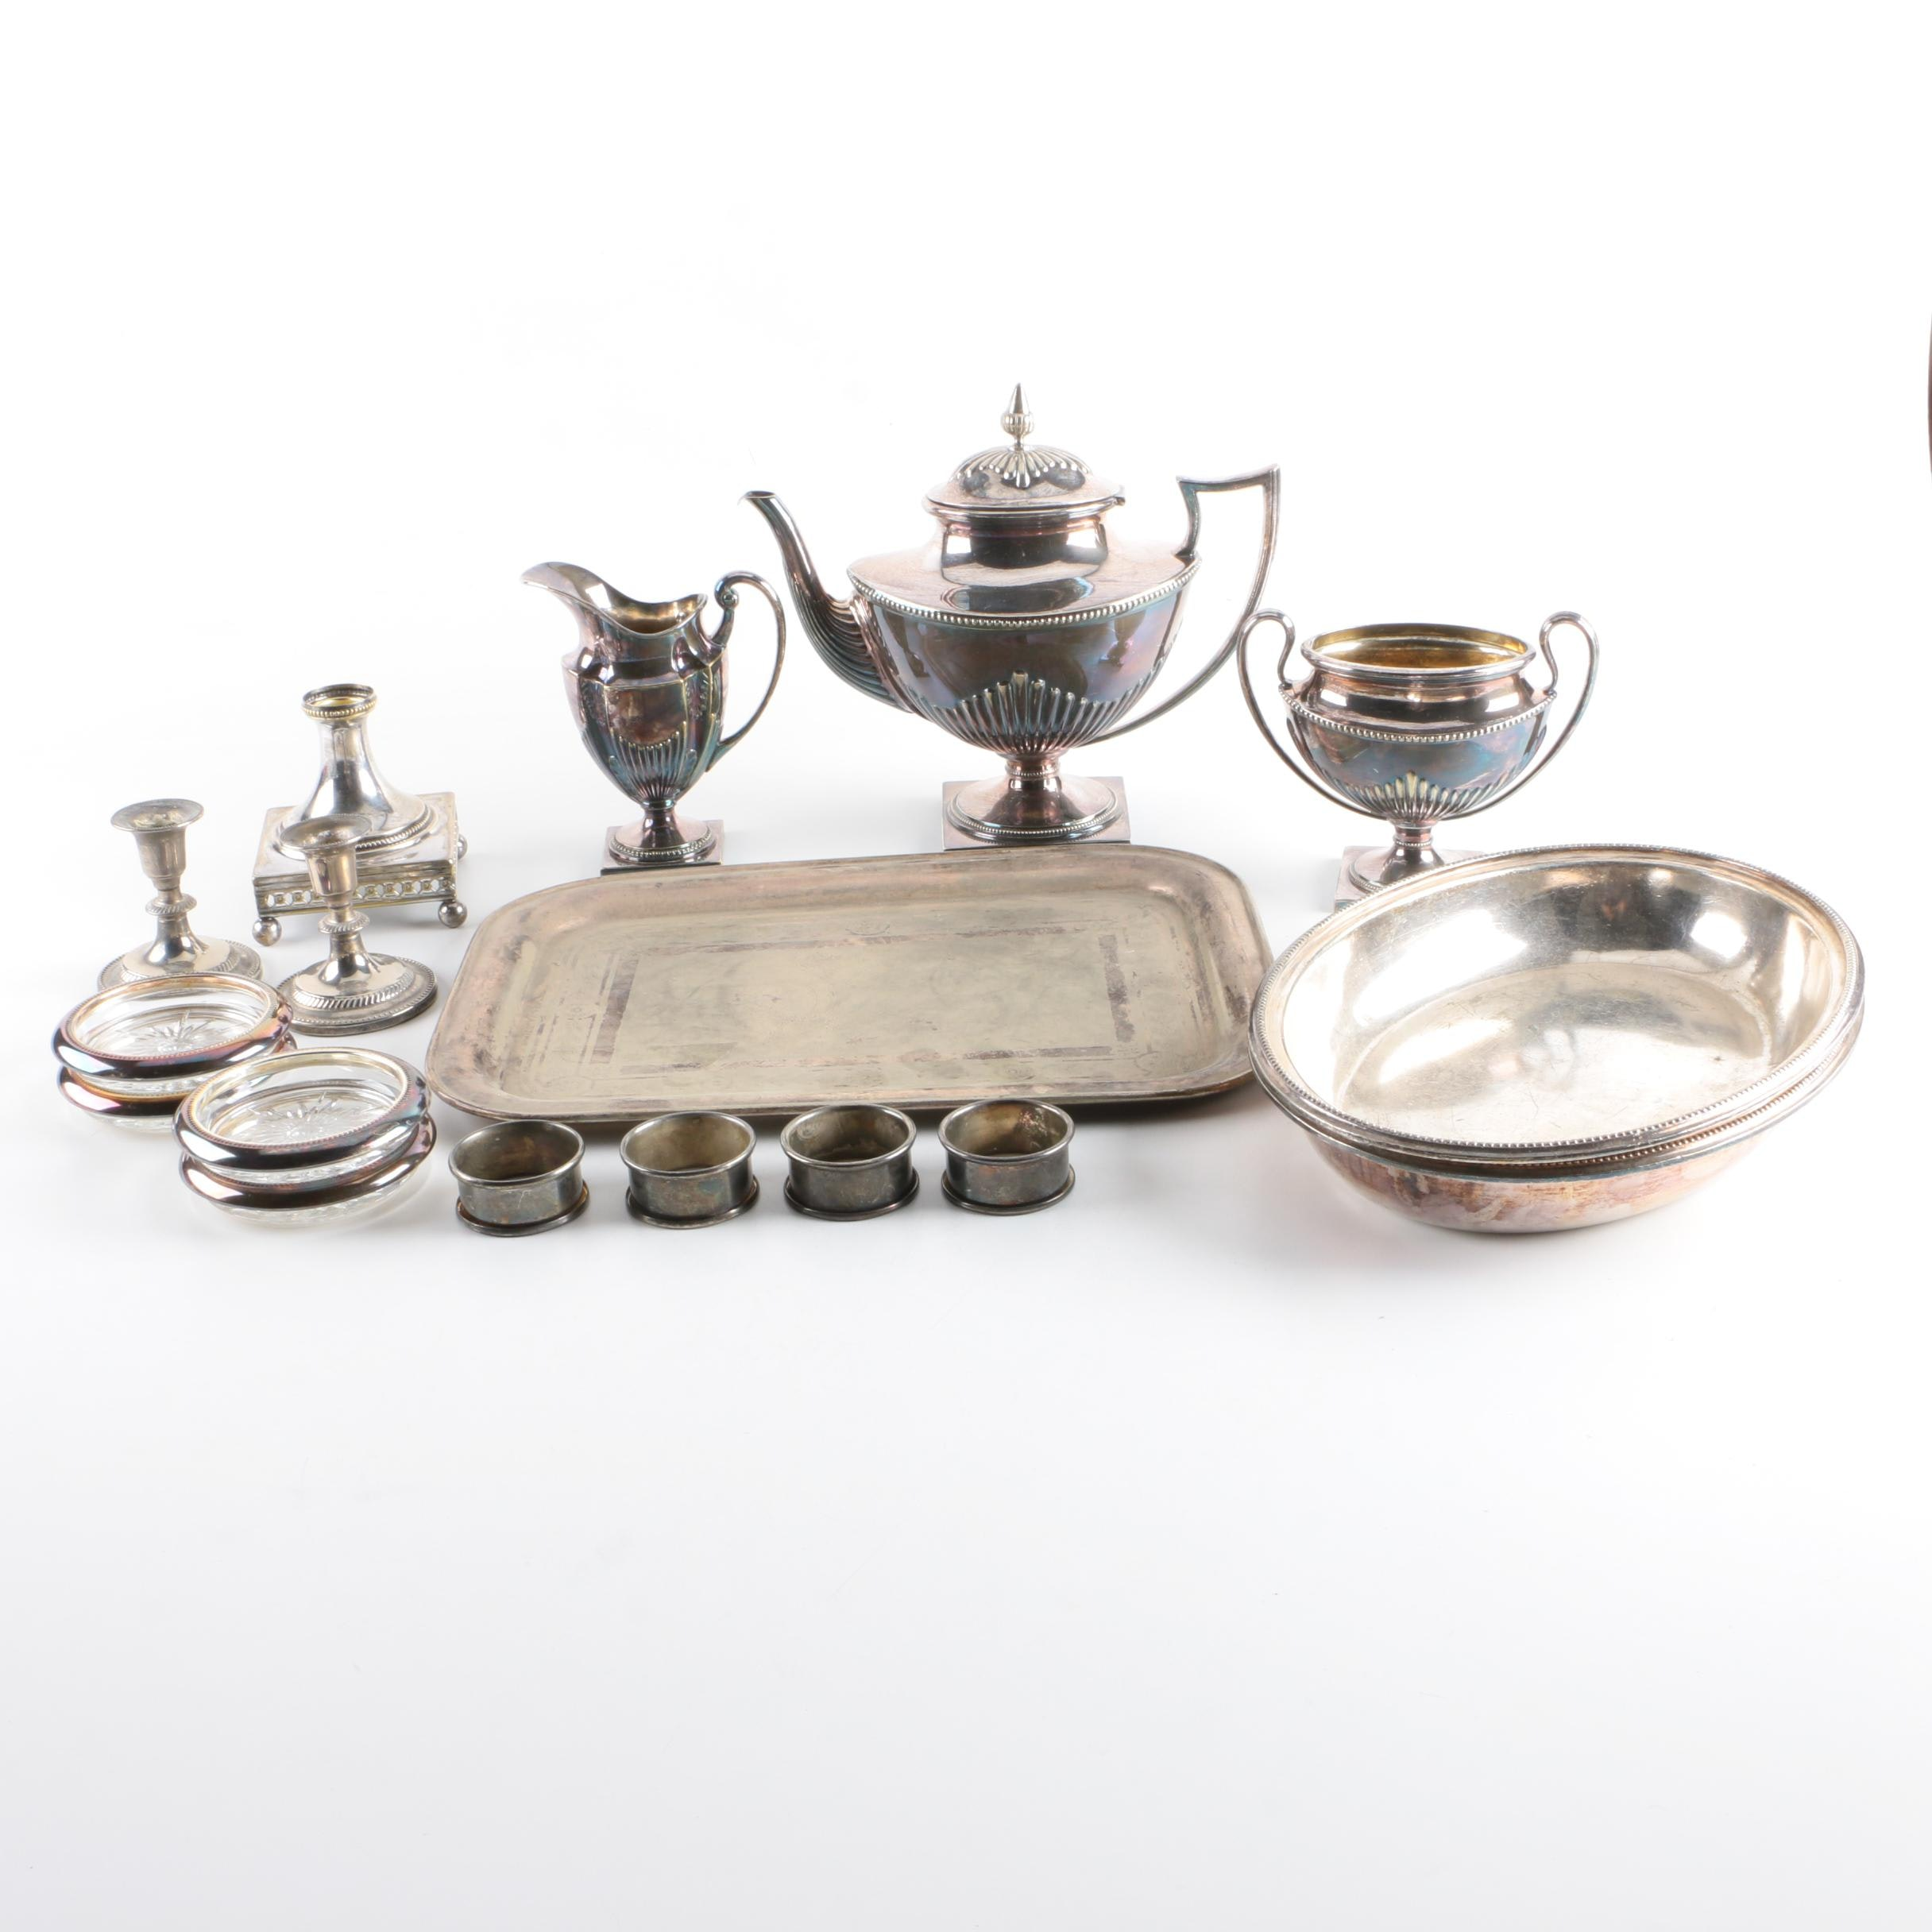 Silver Plate Tea Service and Other Tableware